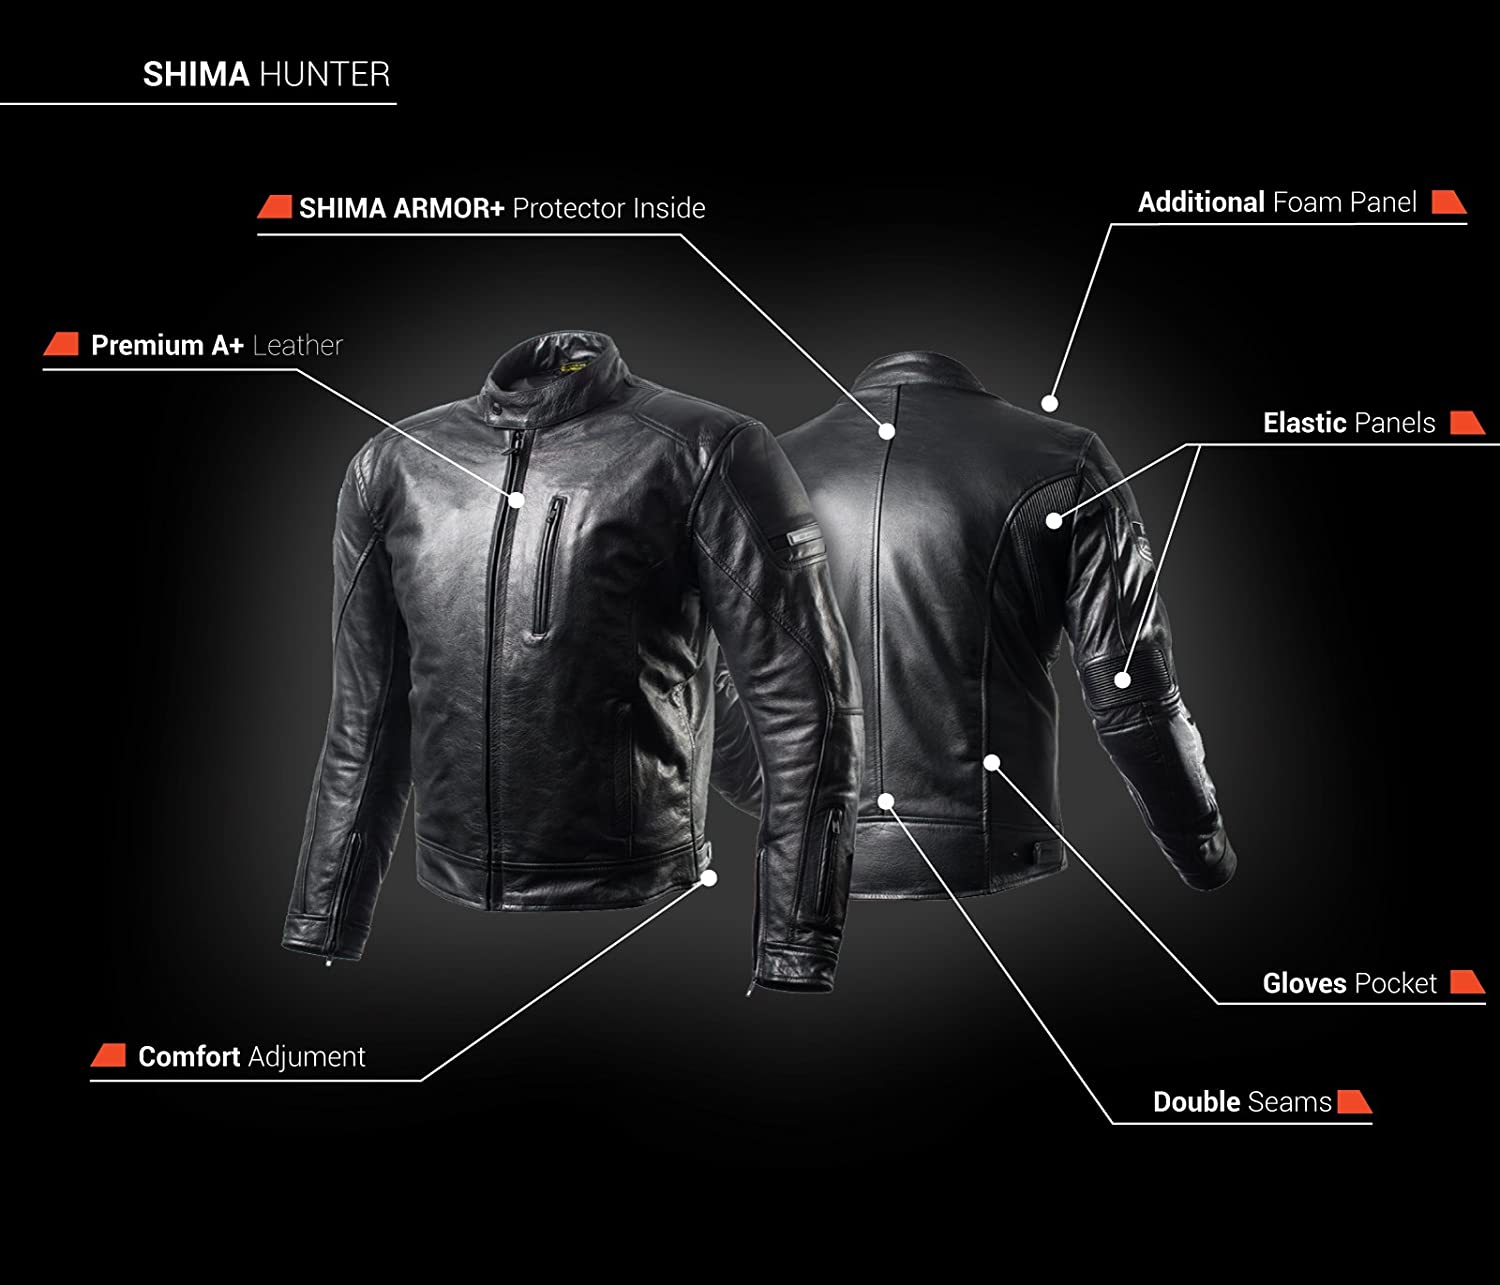 Amazon.com: SHIMA HUNTER, Slim Back Medium Protector Summer Vintage Retro Mens Leather Protective Motorcycle Jacket with Armor and Inside Pocket (S-XXL) (M, ...